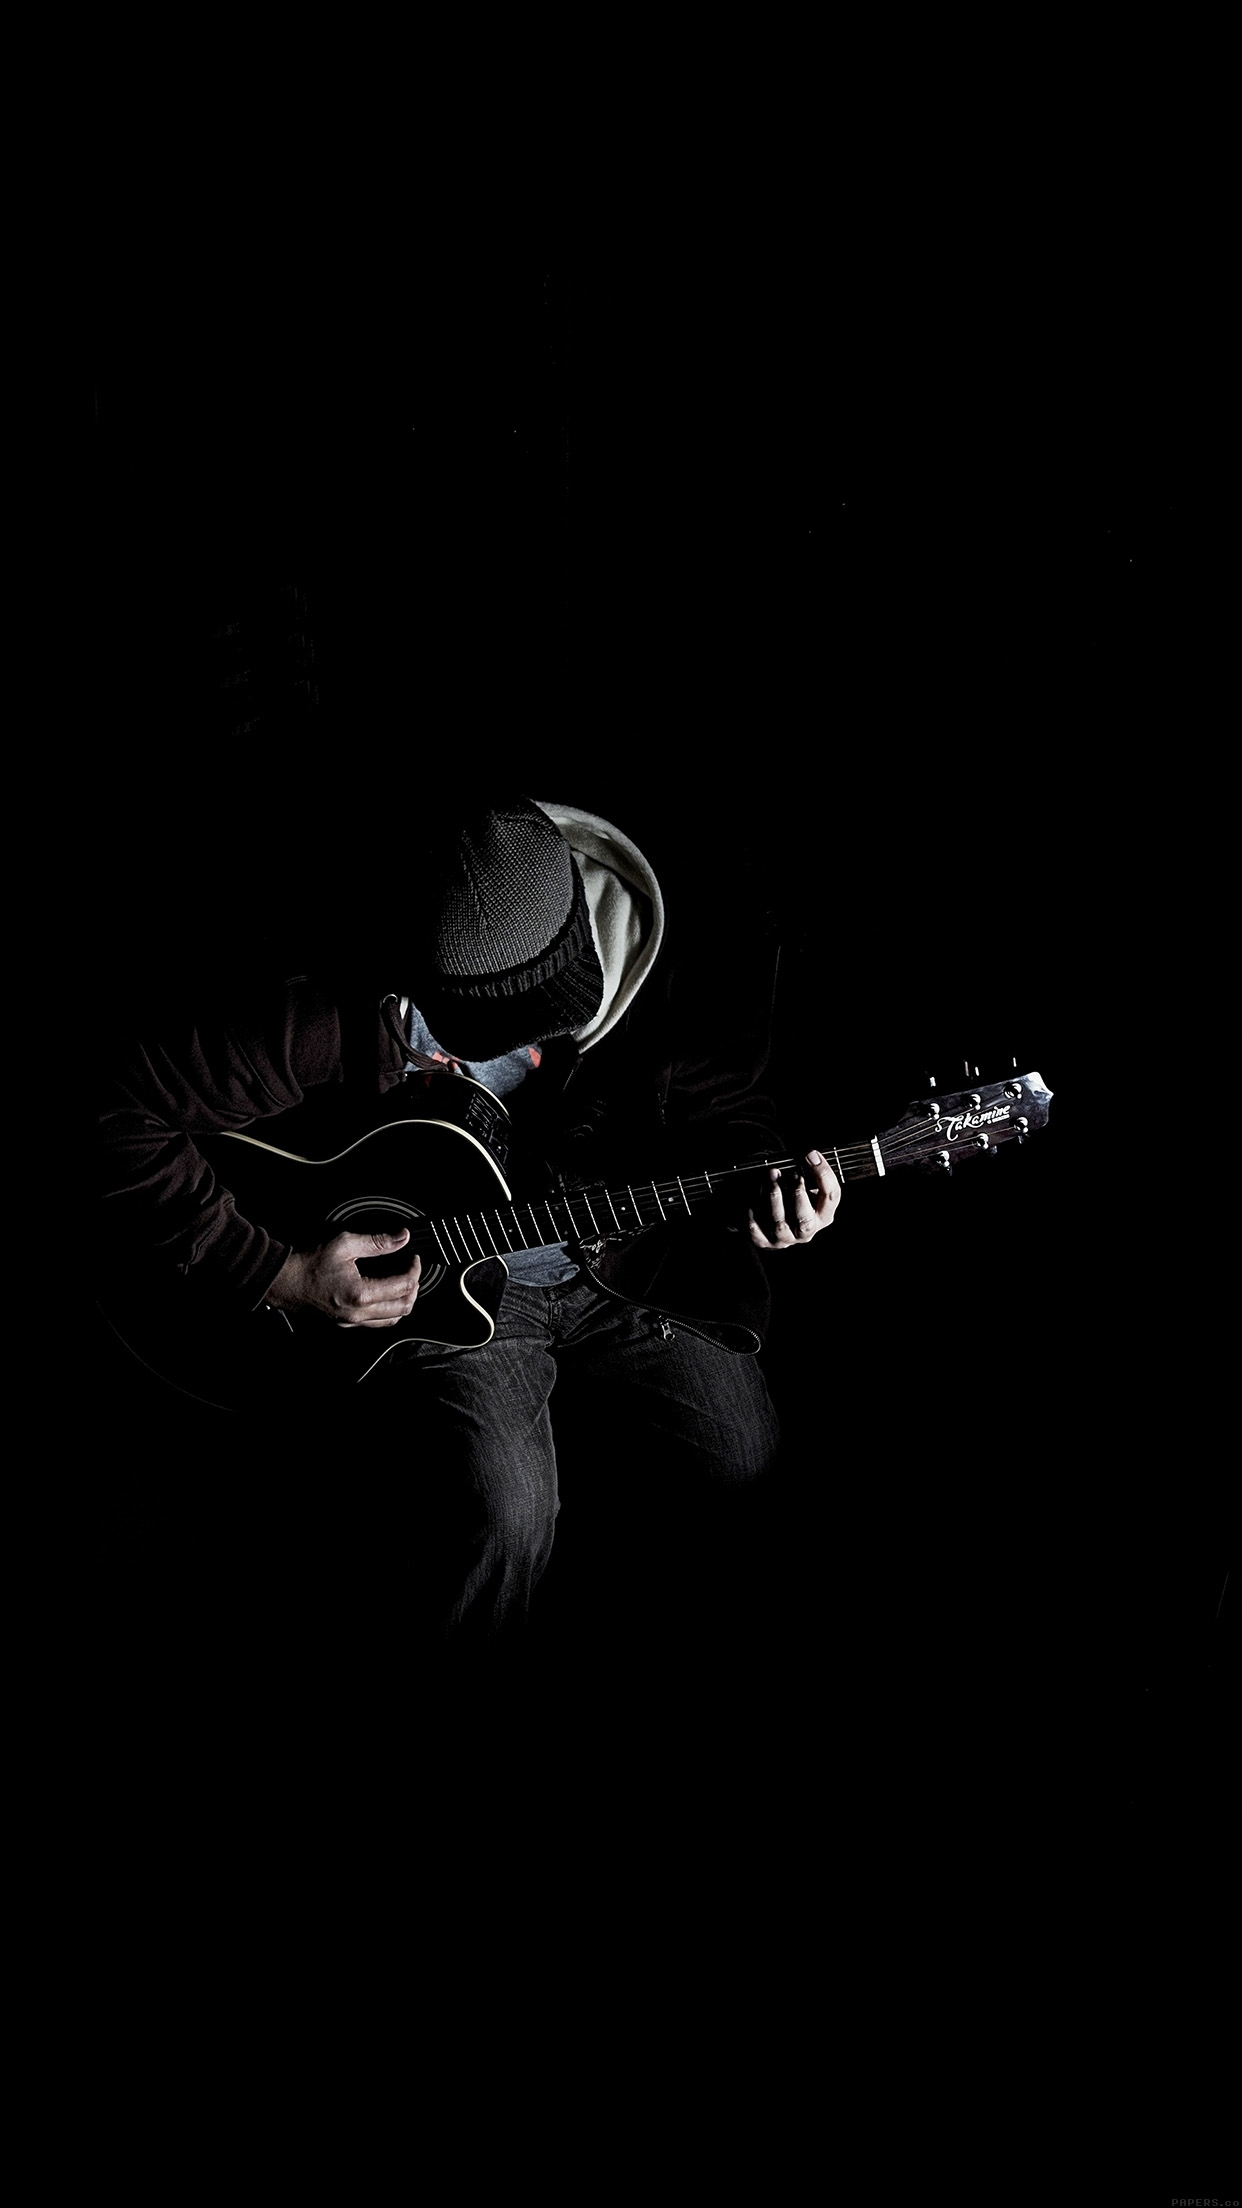 10 Latest Black Wallpaper Hd Android FULL HD 1080p For PC Background     Title   out the dark guitar player music android wallpaper     android hd   Dimension   1242 x 2208  File Type   JPG JPEG